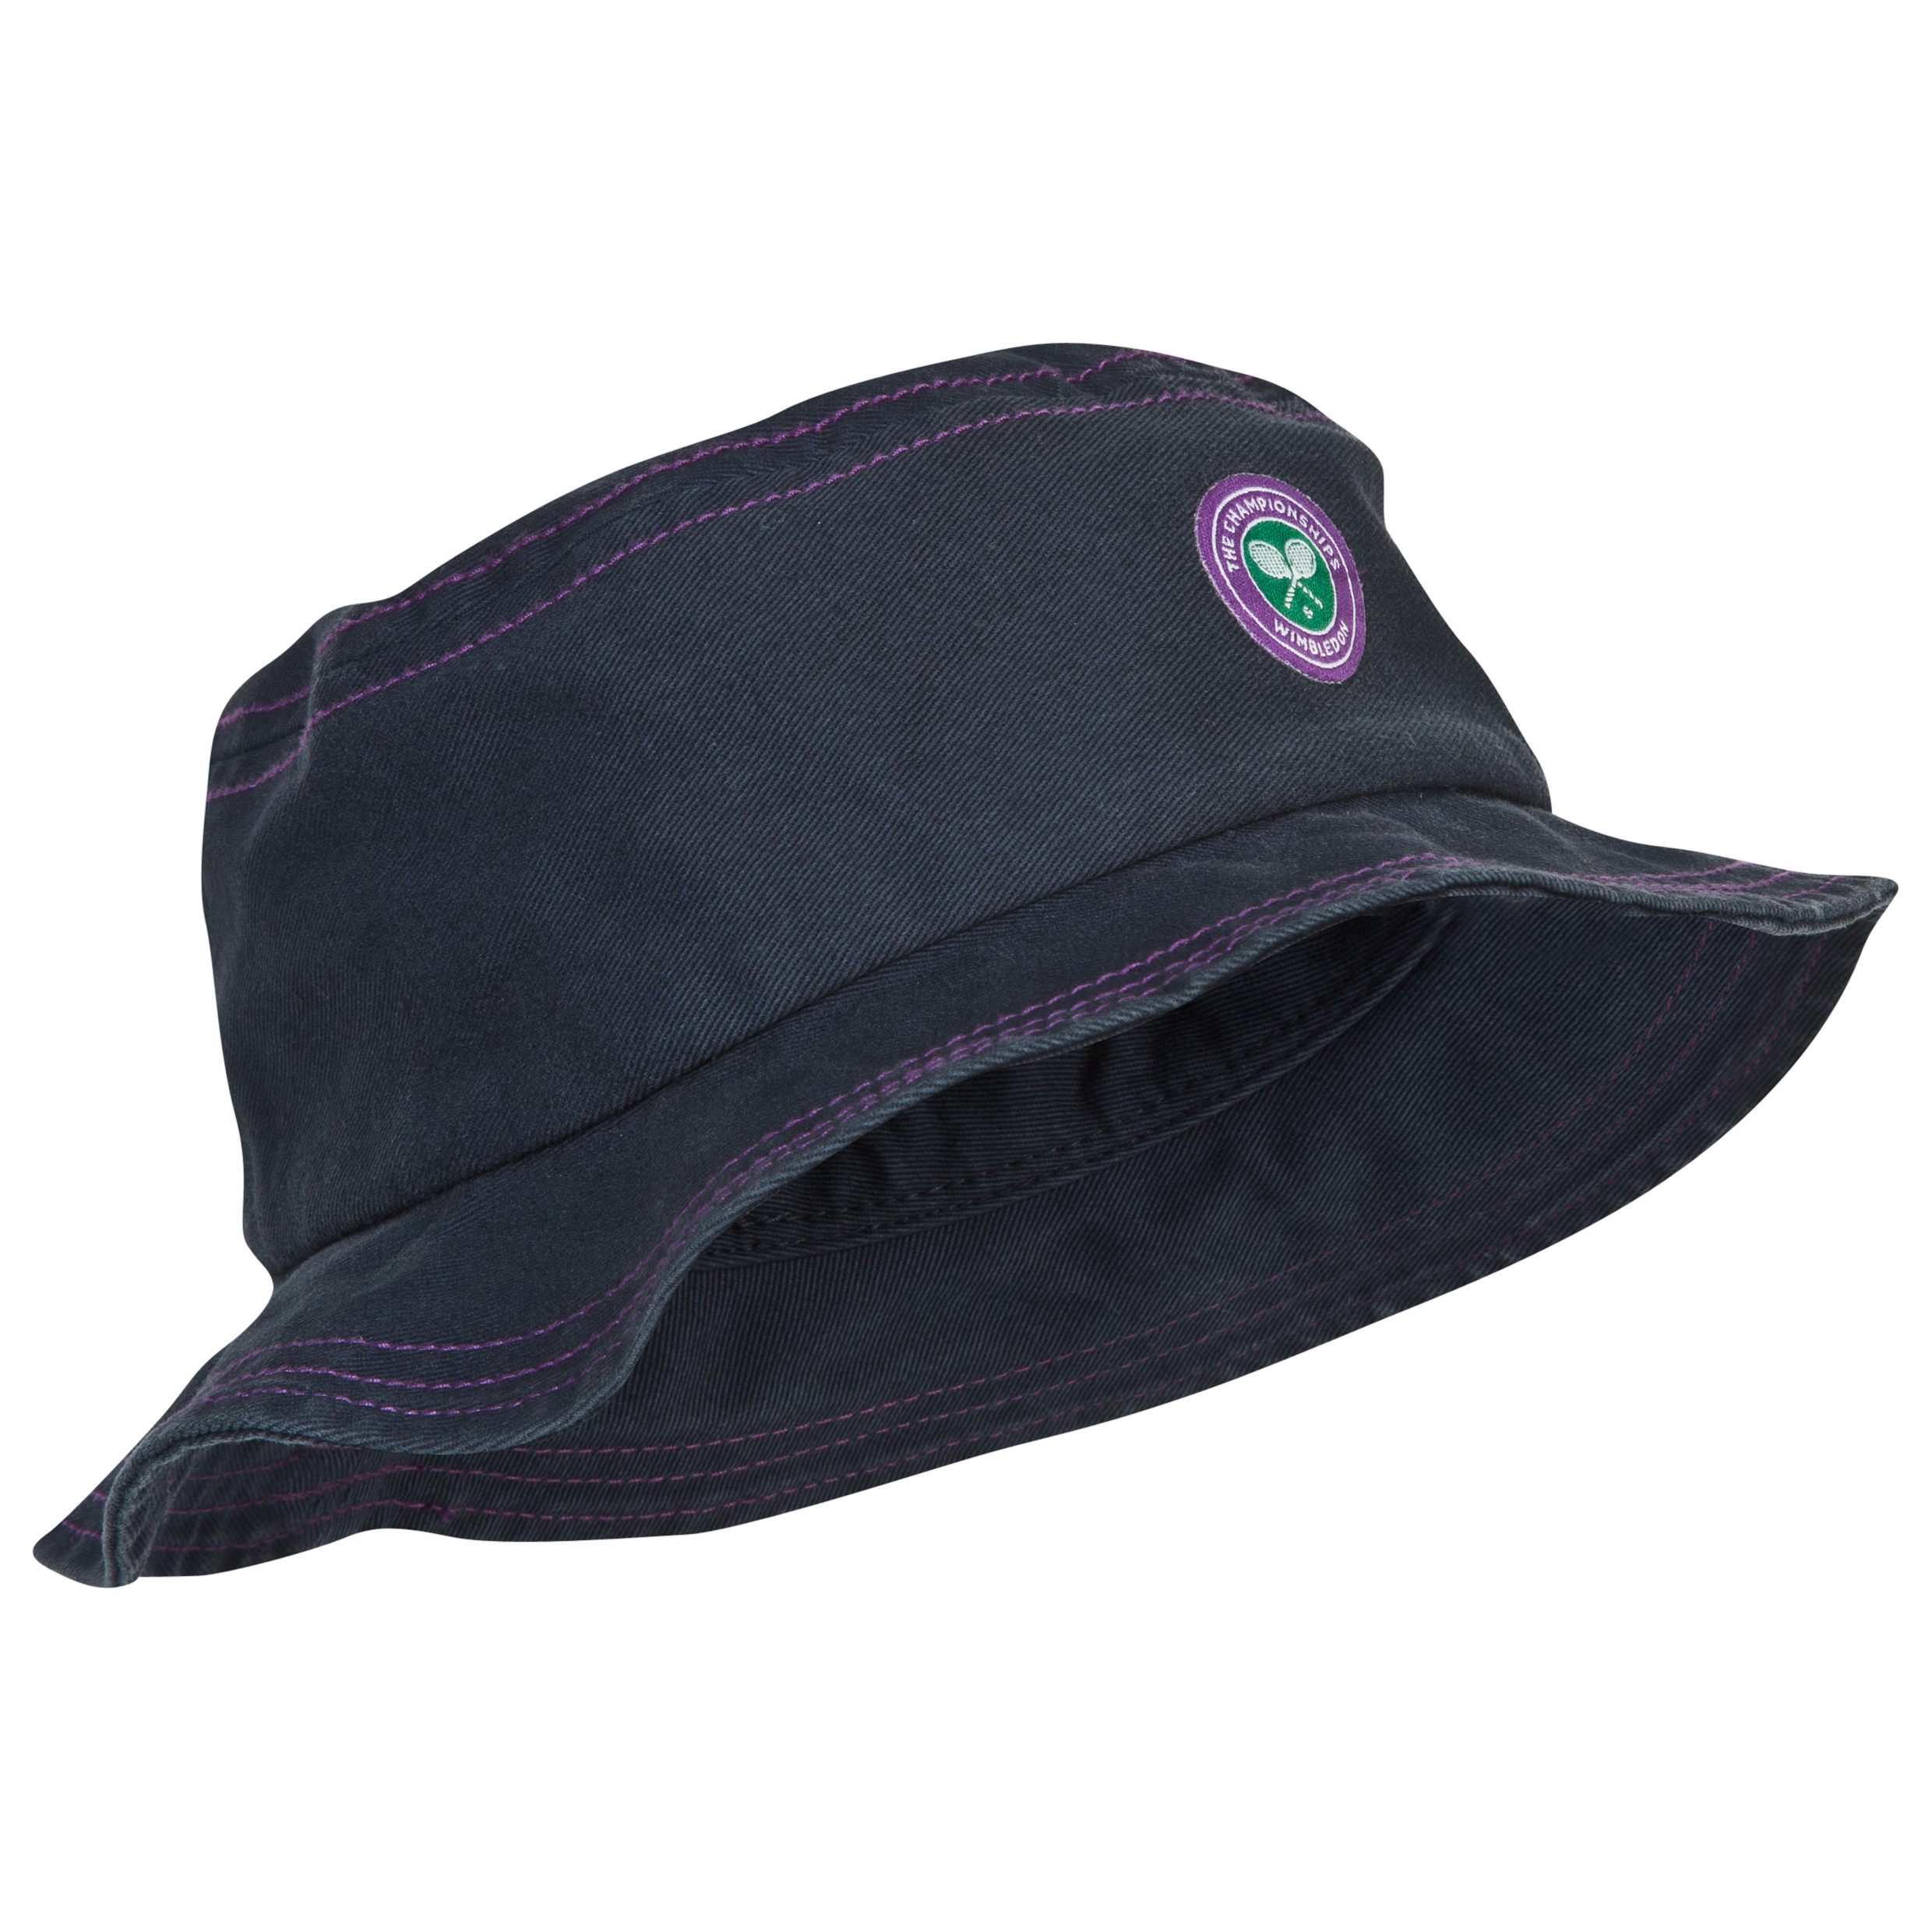 Wimbledon Baby Boys Sun Hat - Infant Navy